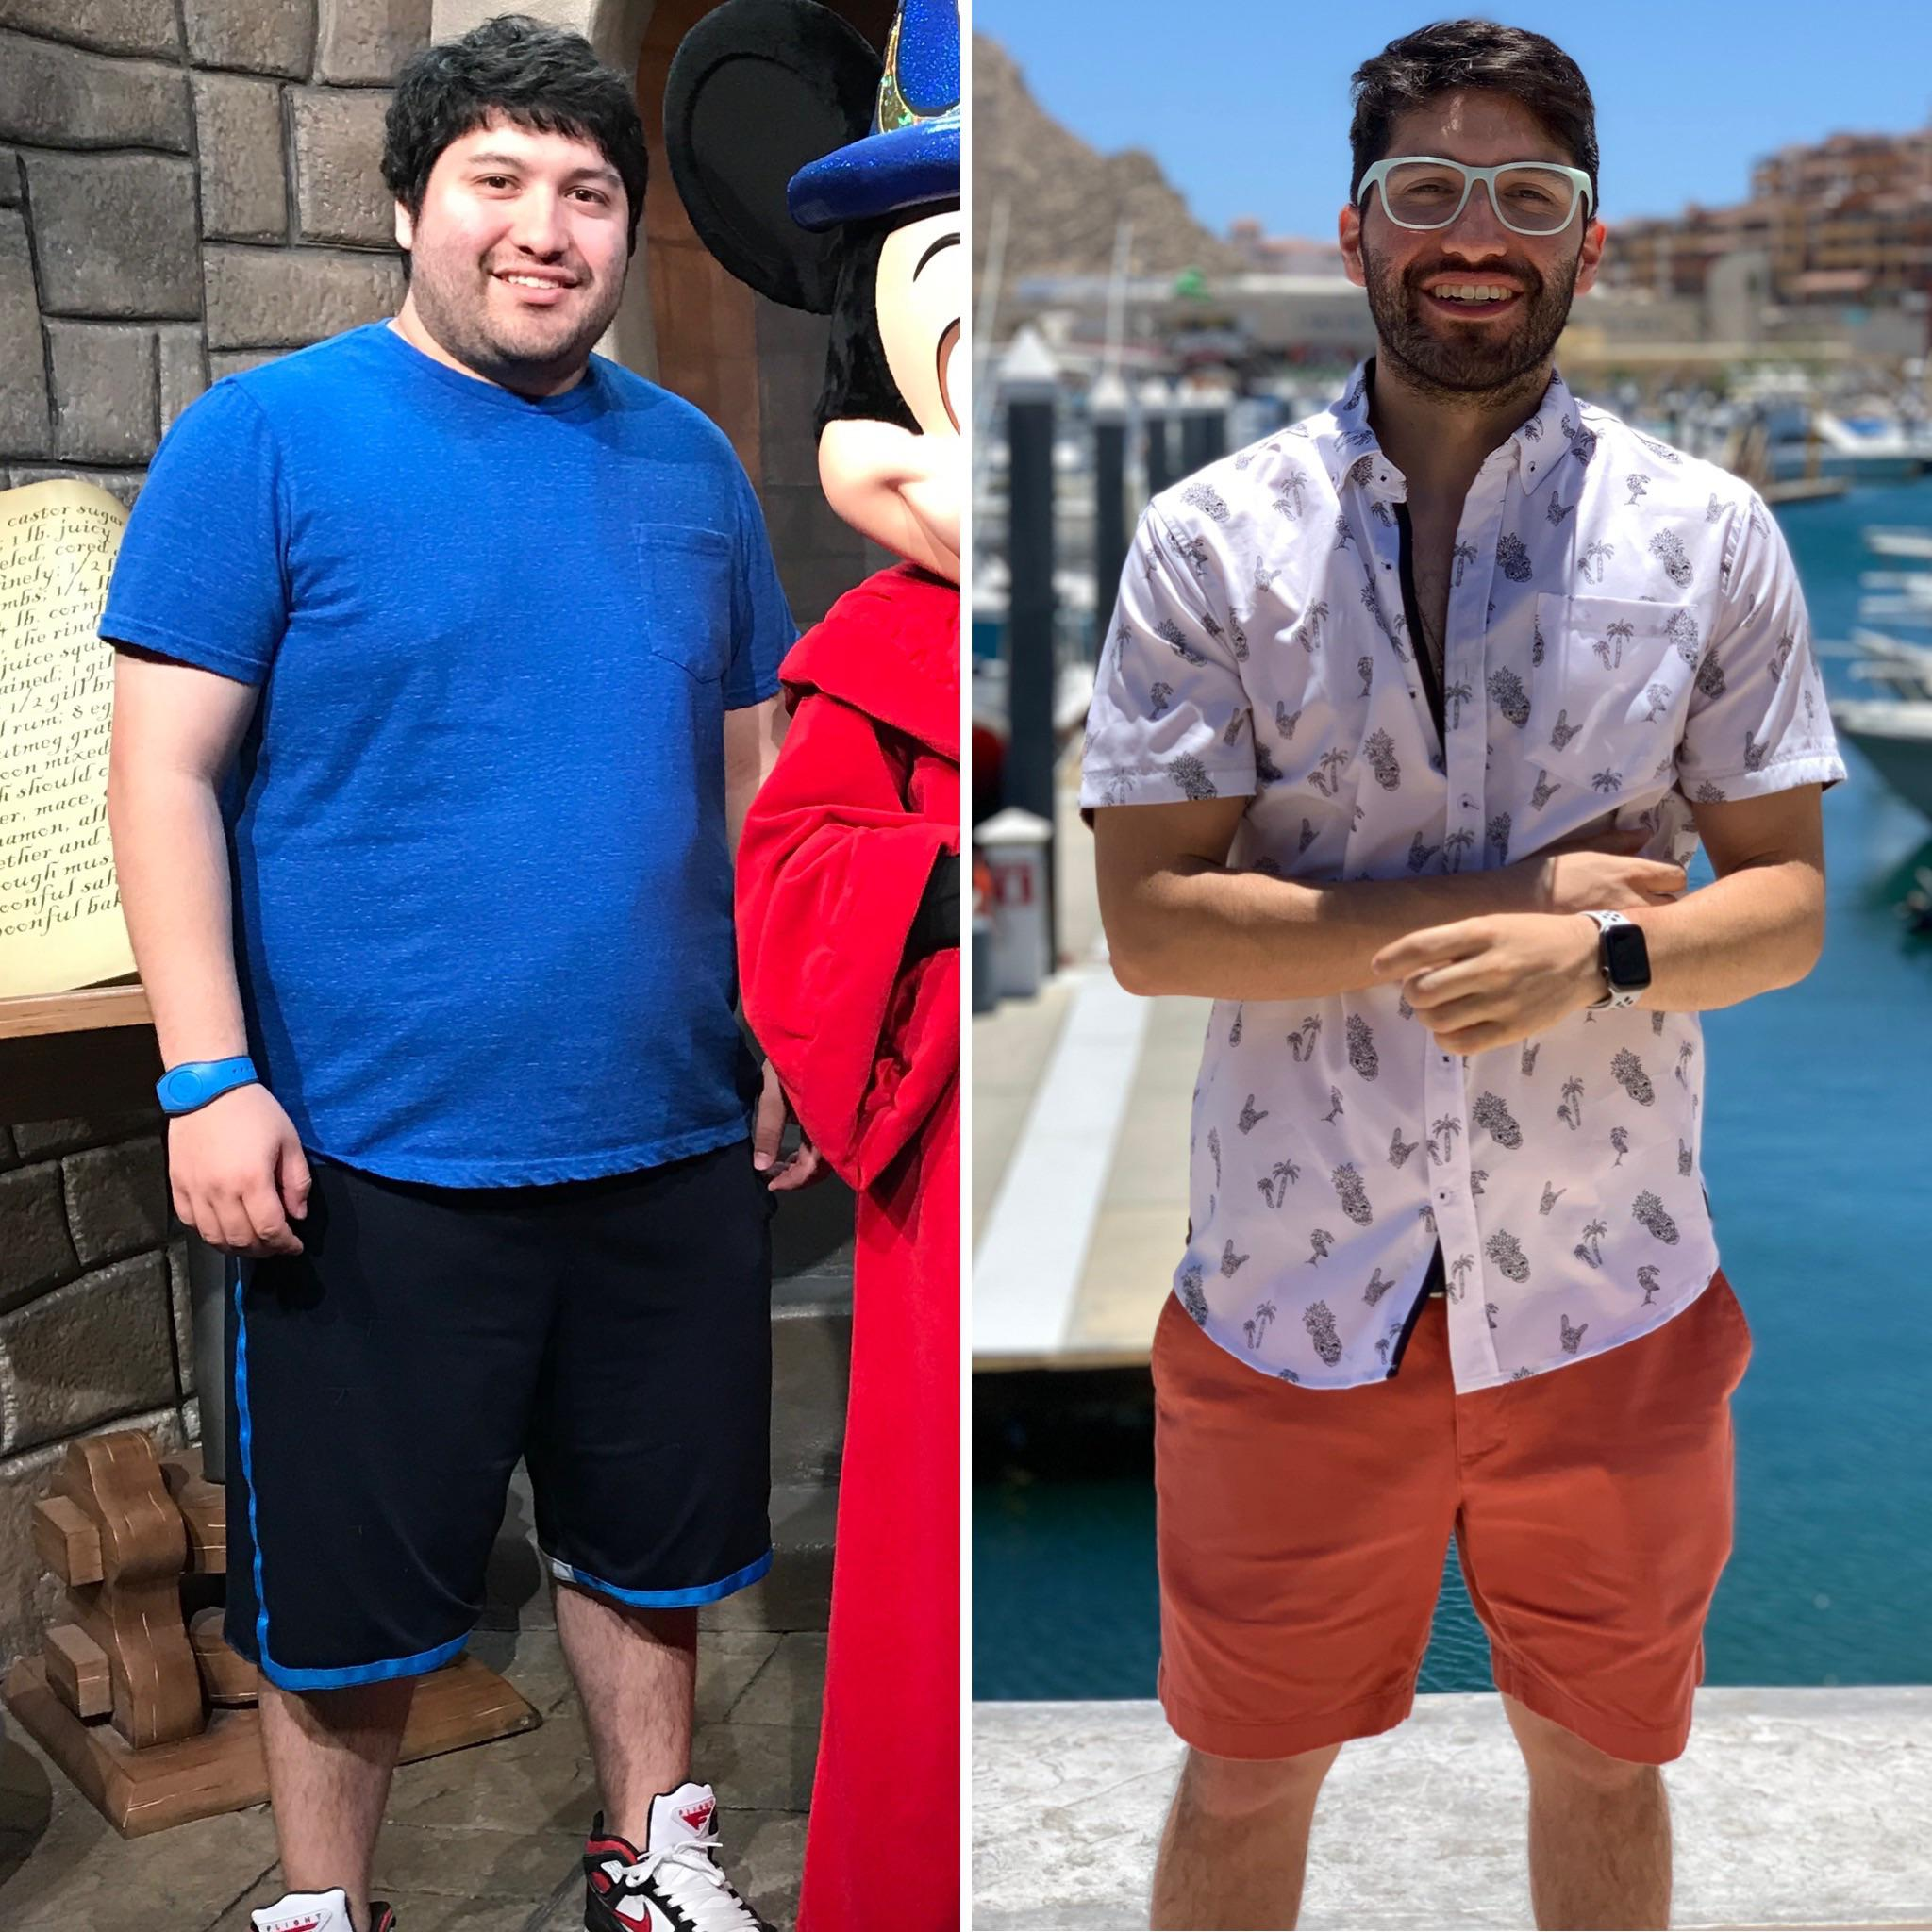 5'5 Male 120 lbs Weight Loss Before and After 265 lbs to 145 lbs